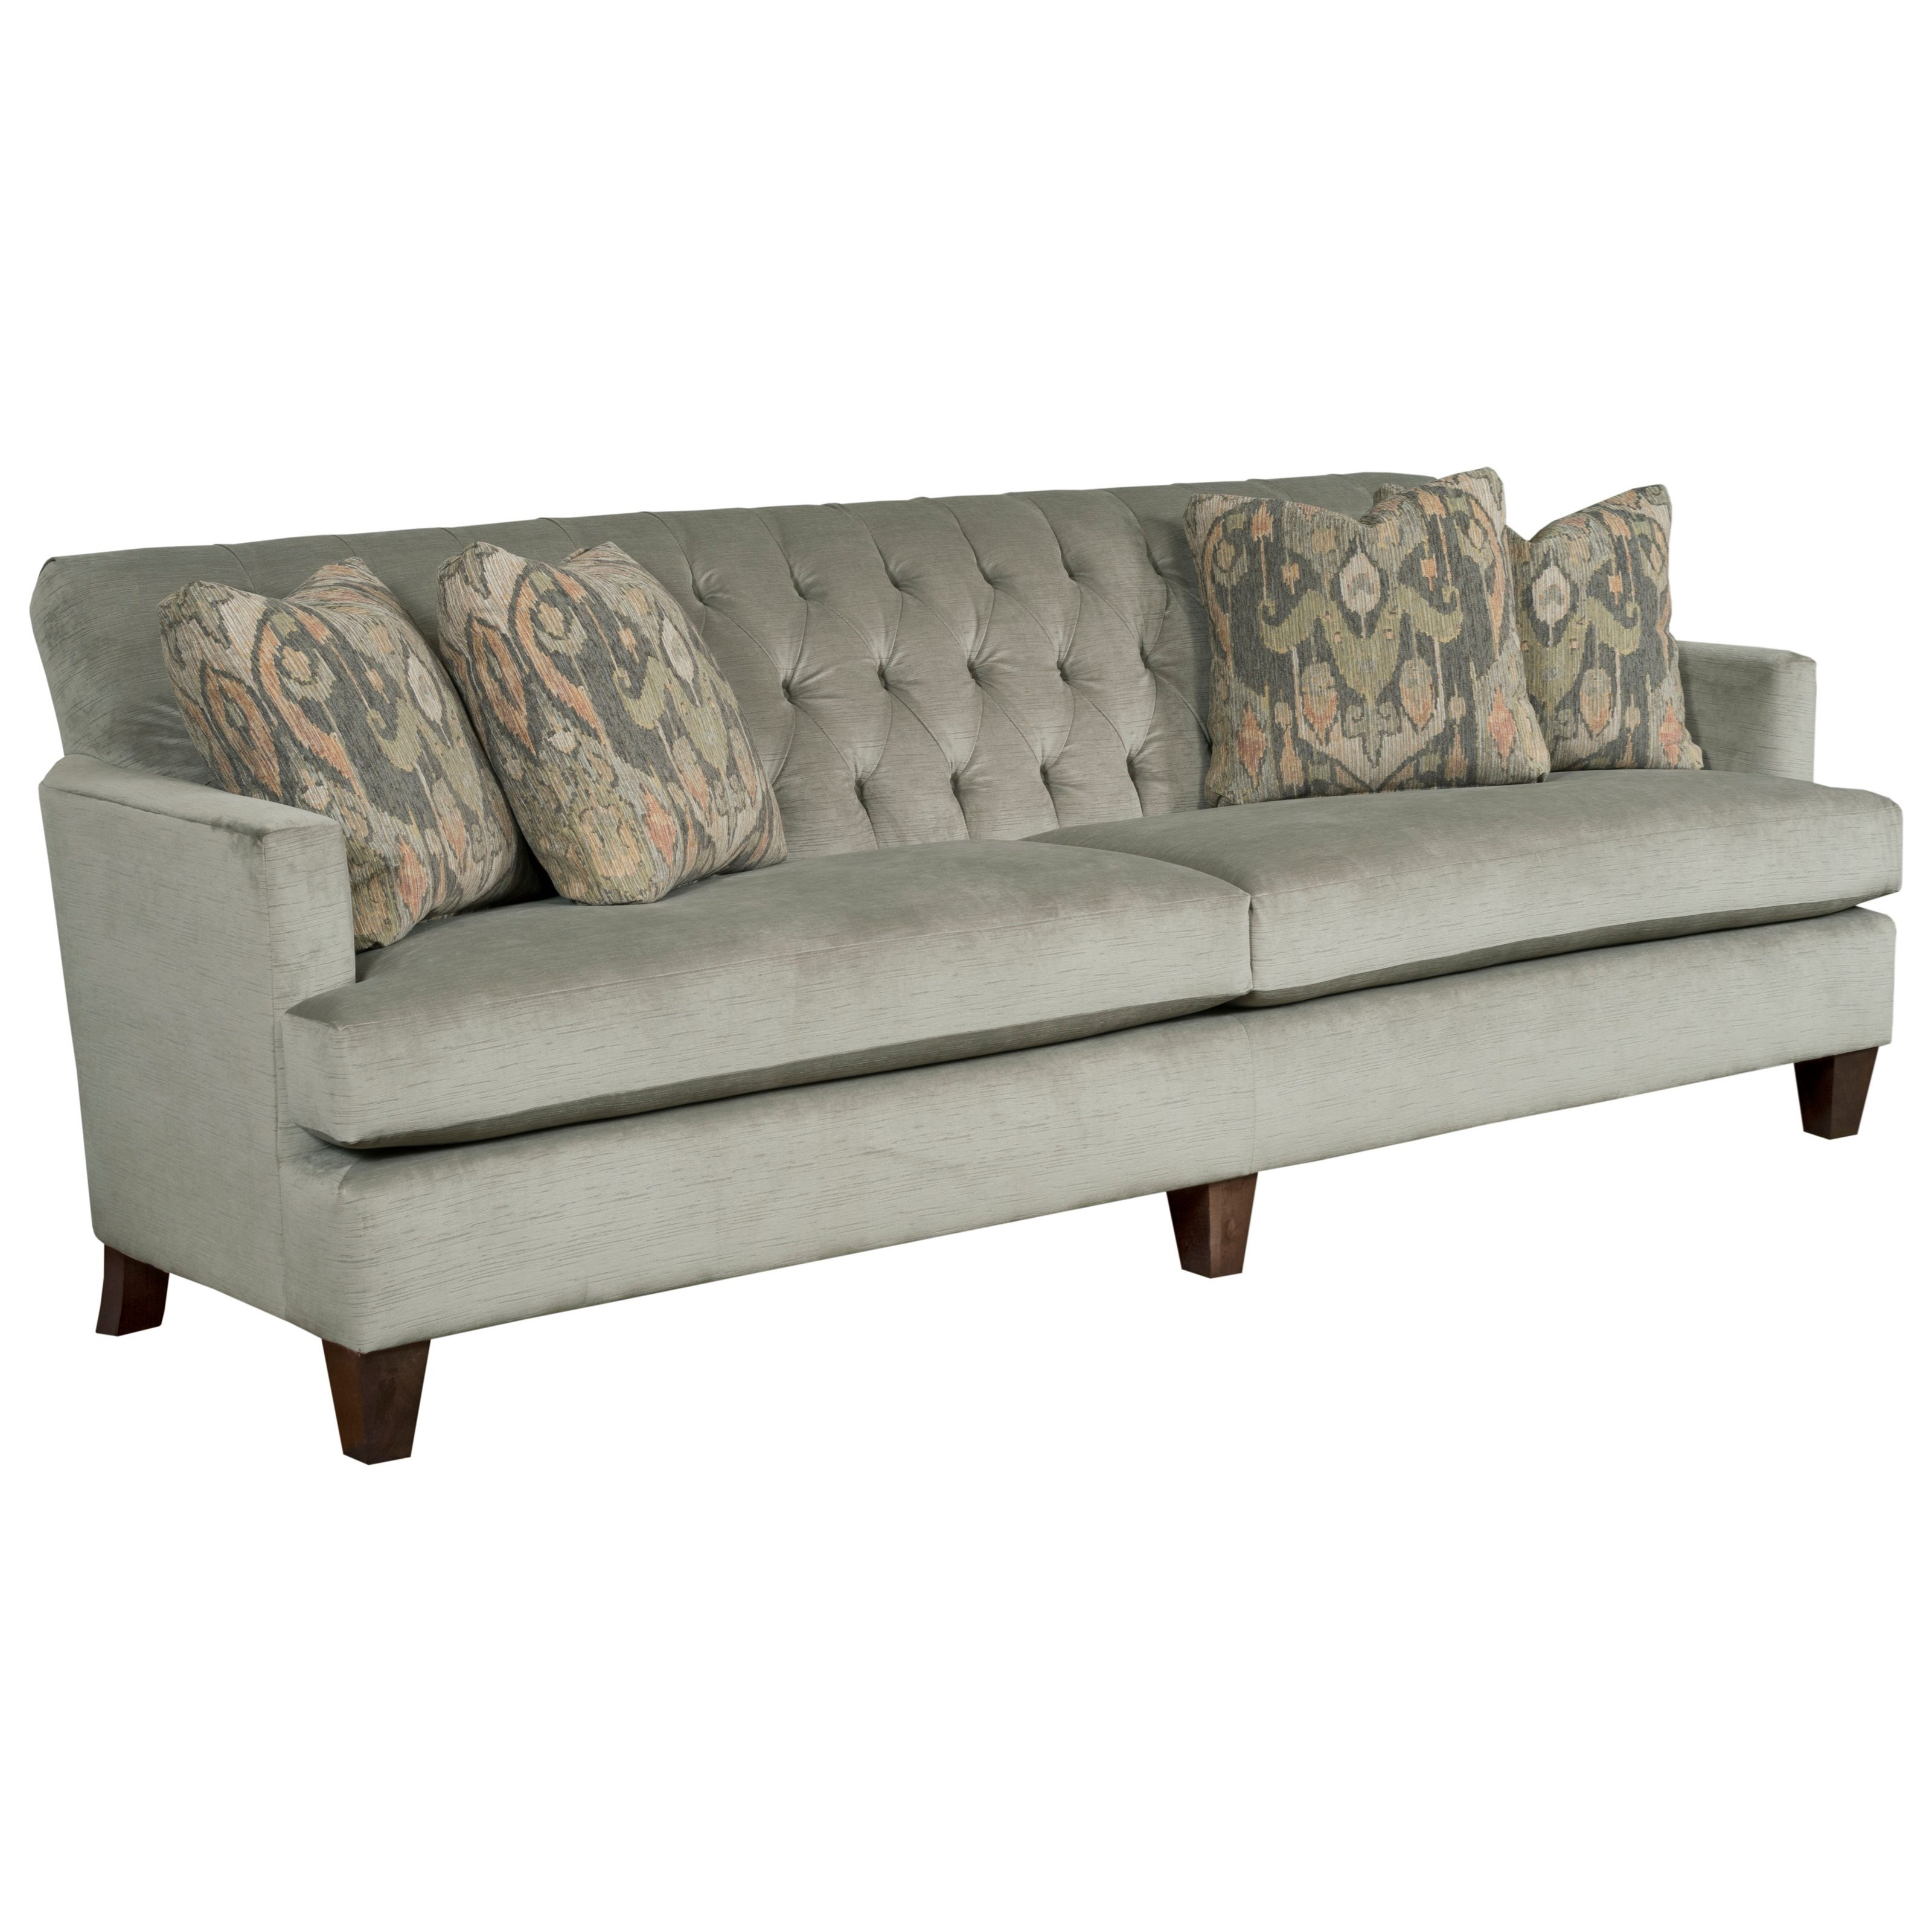 kincaid sofas reviews klaussner furniture slipcovered sectional sofa carillon contemporary grande with